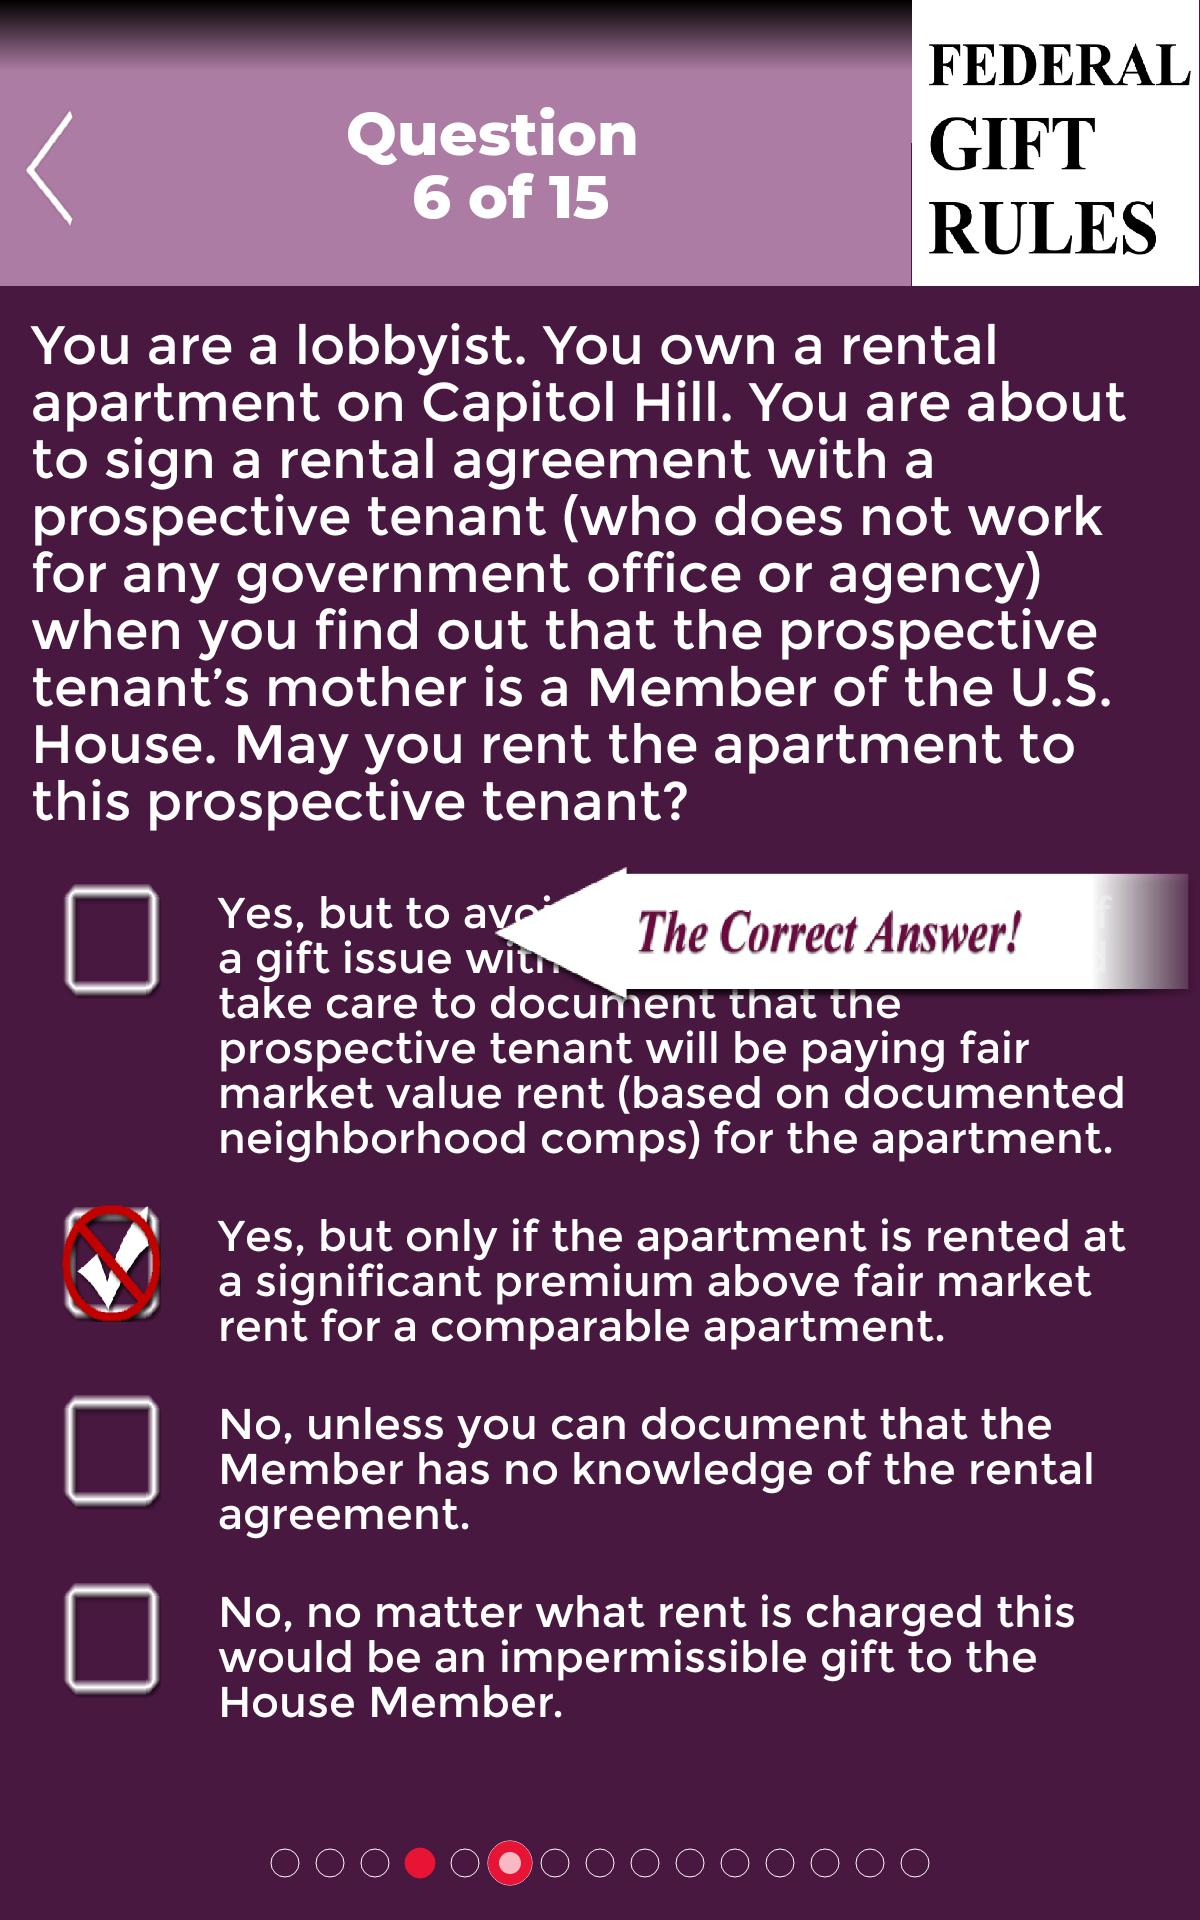 Wiley's Federal Gift Rules Assistant poster